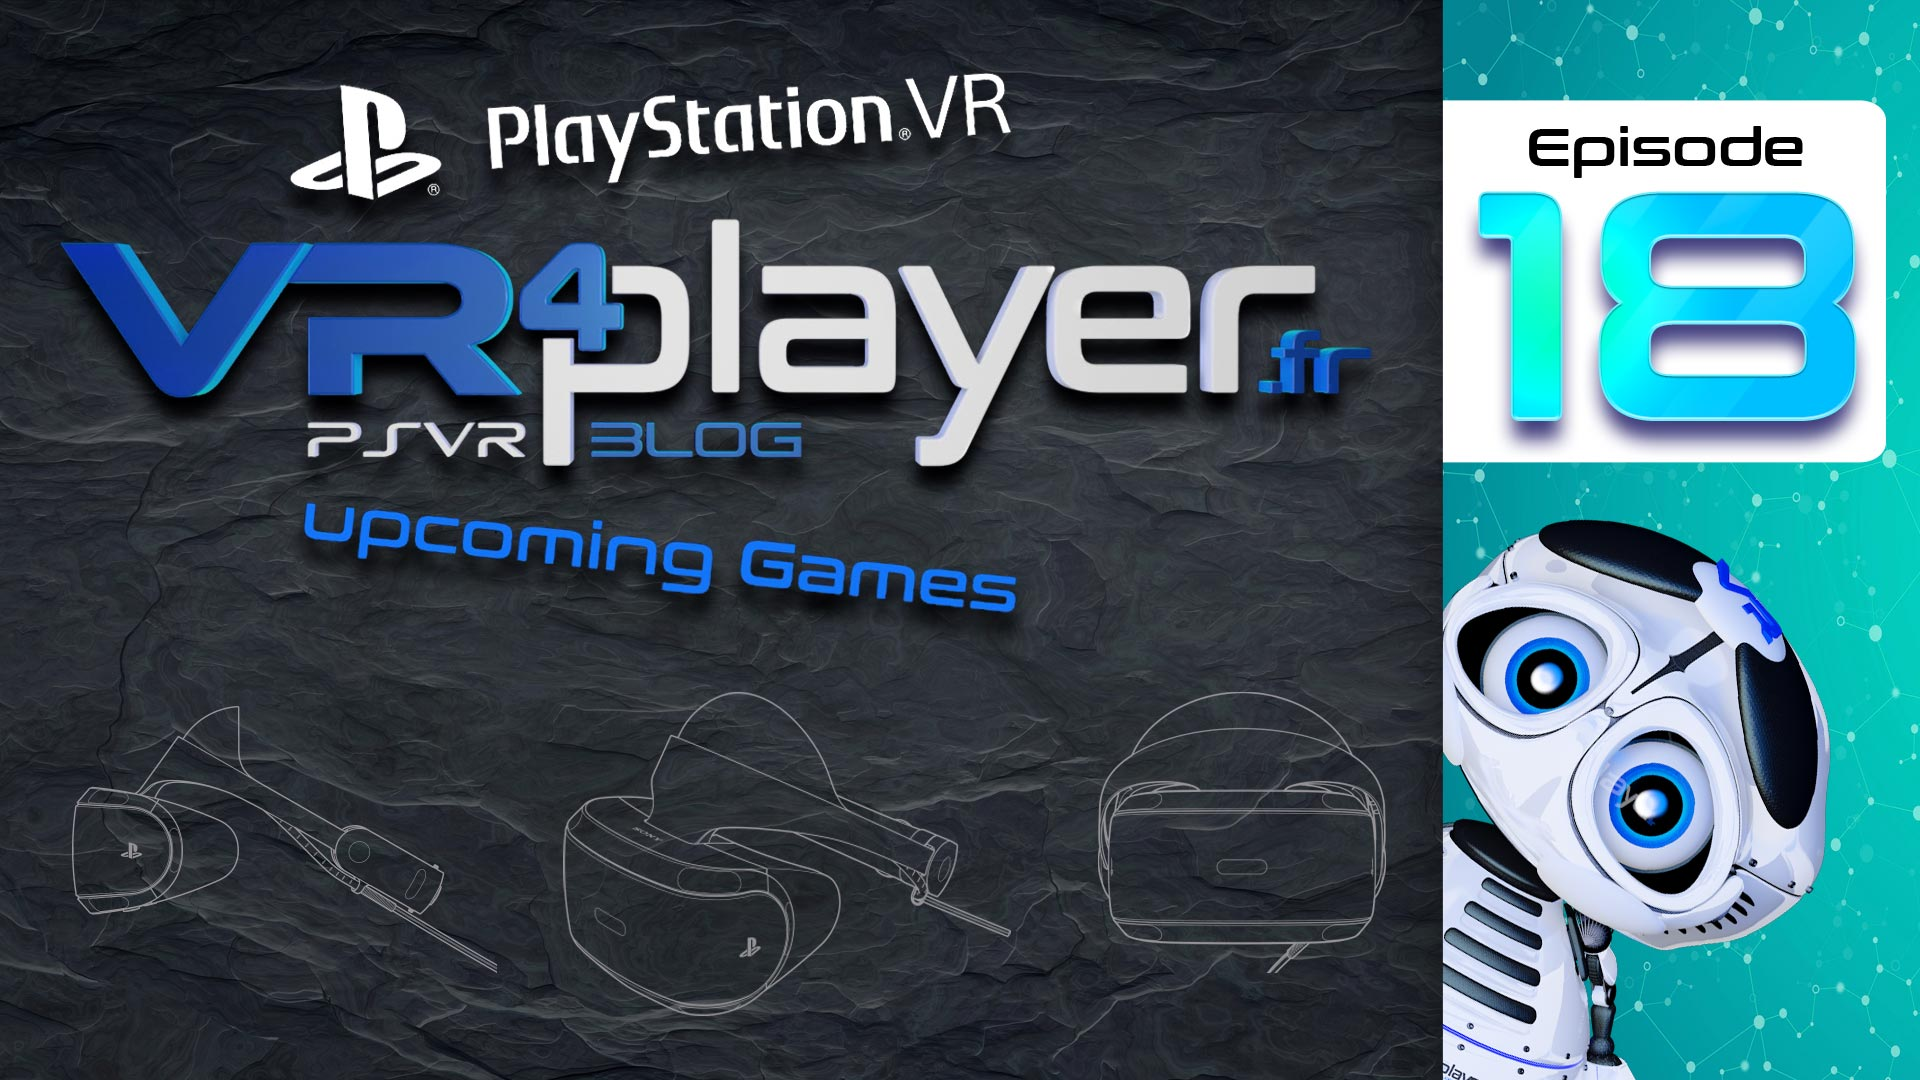 PlayStation VR Upcoming Games VR4player